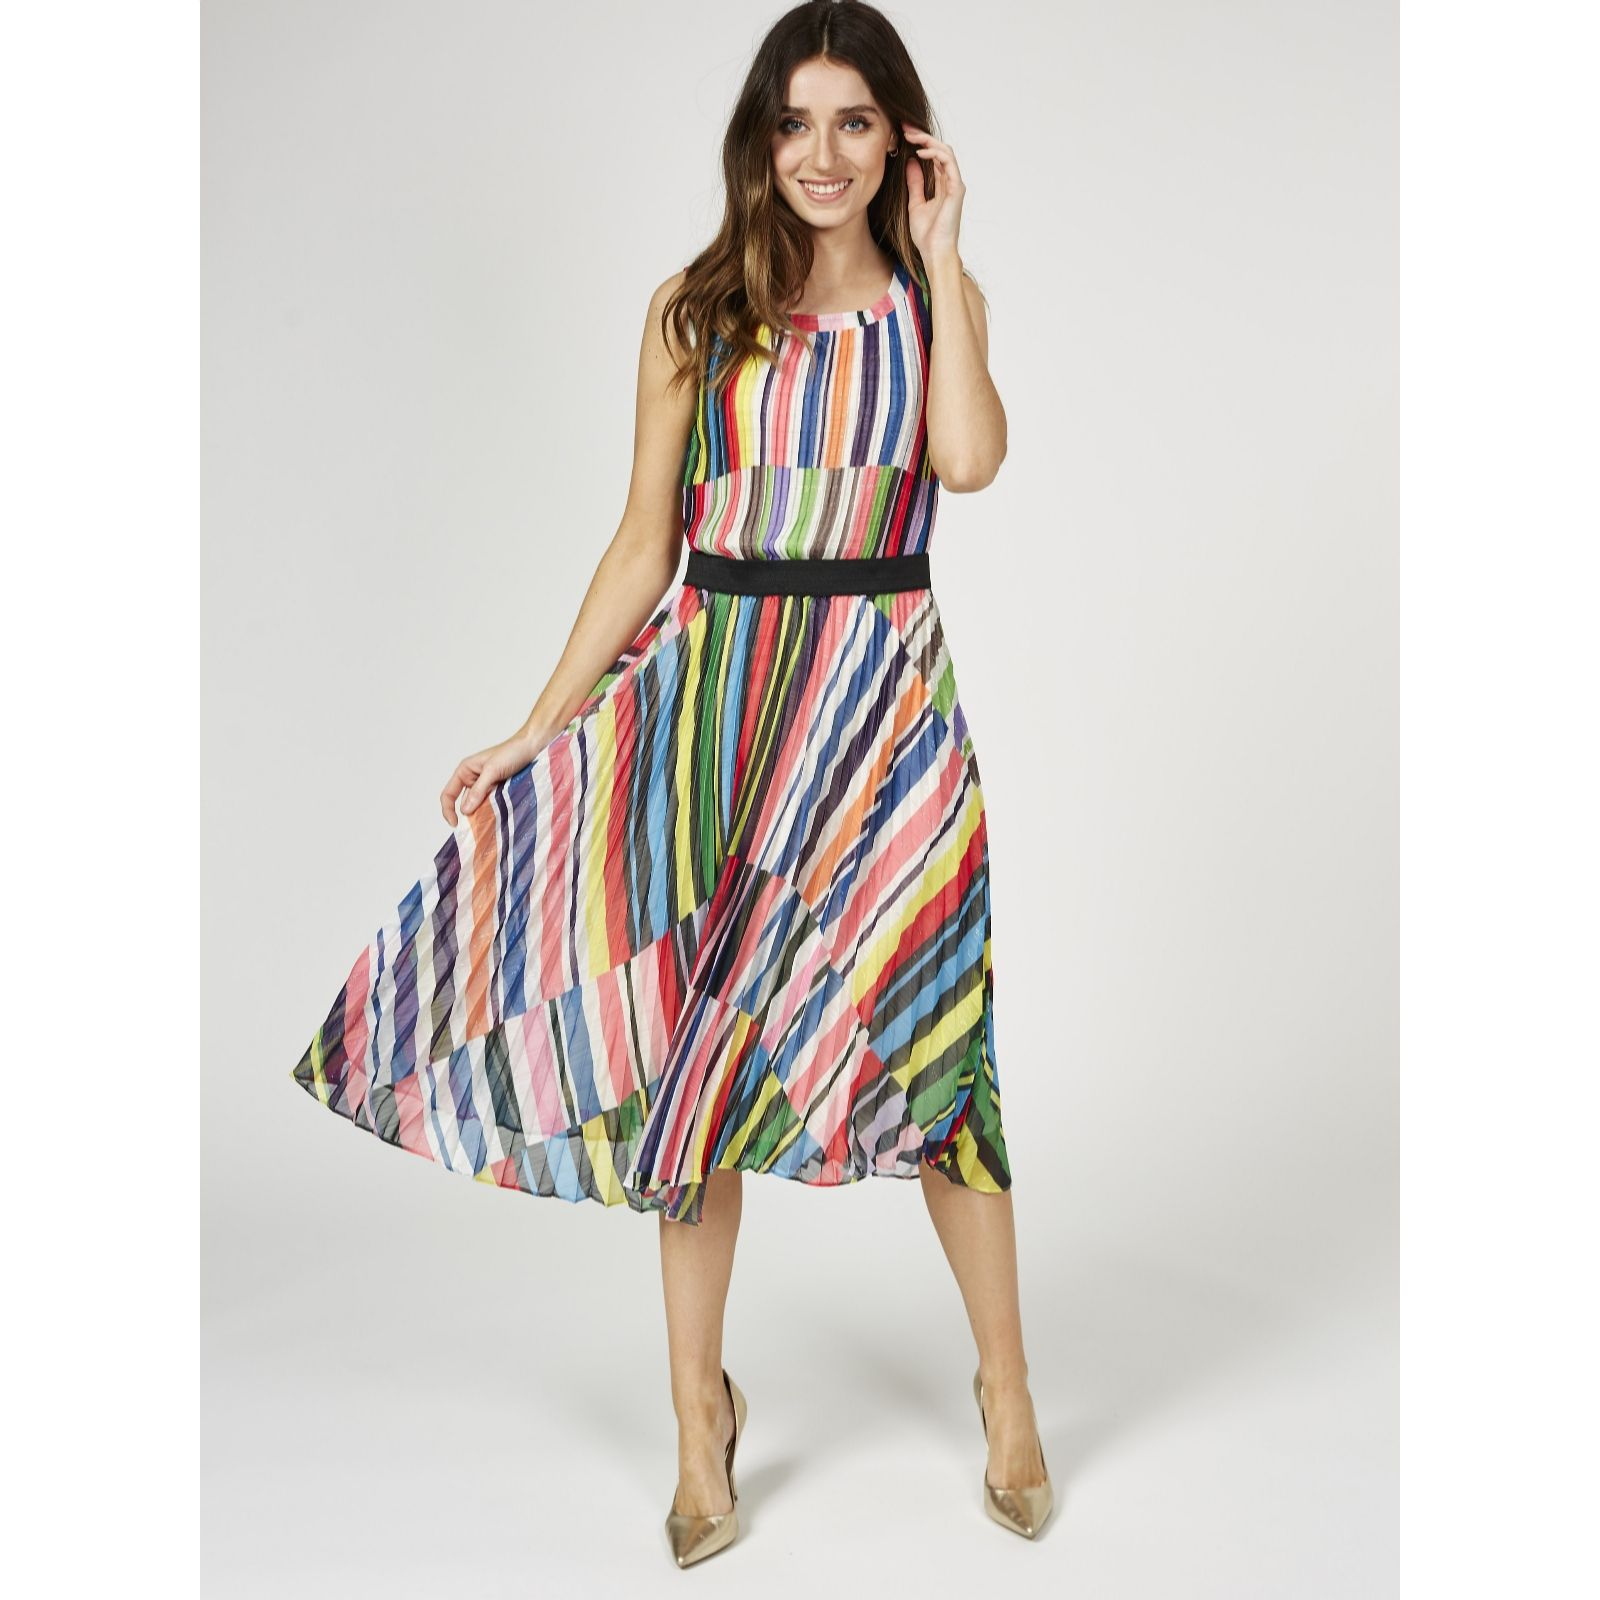 82881a2ed3a Derhy Printed Striped Sleeveless Dress with Solid Waistband - QVC UK